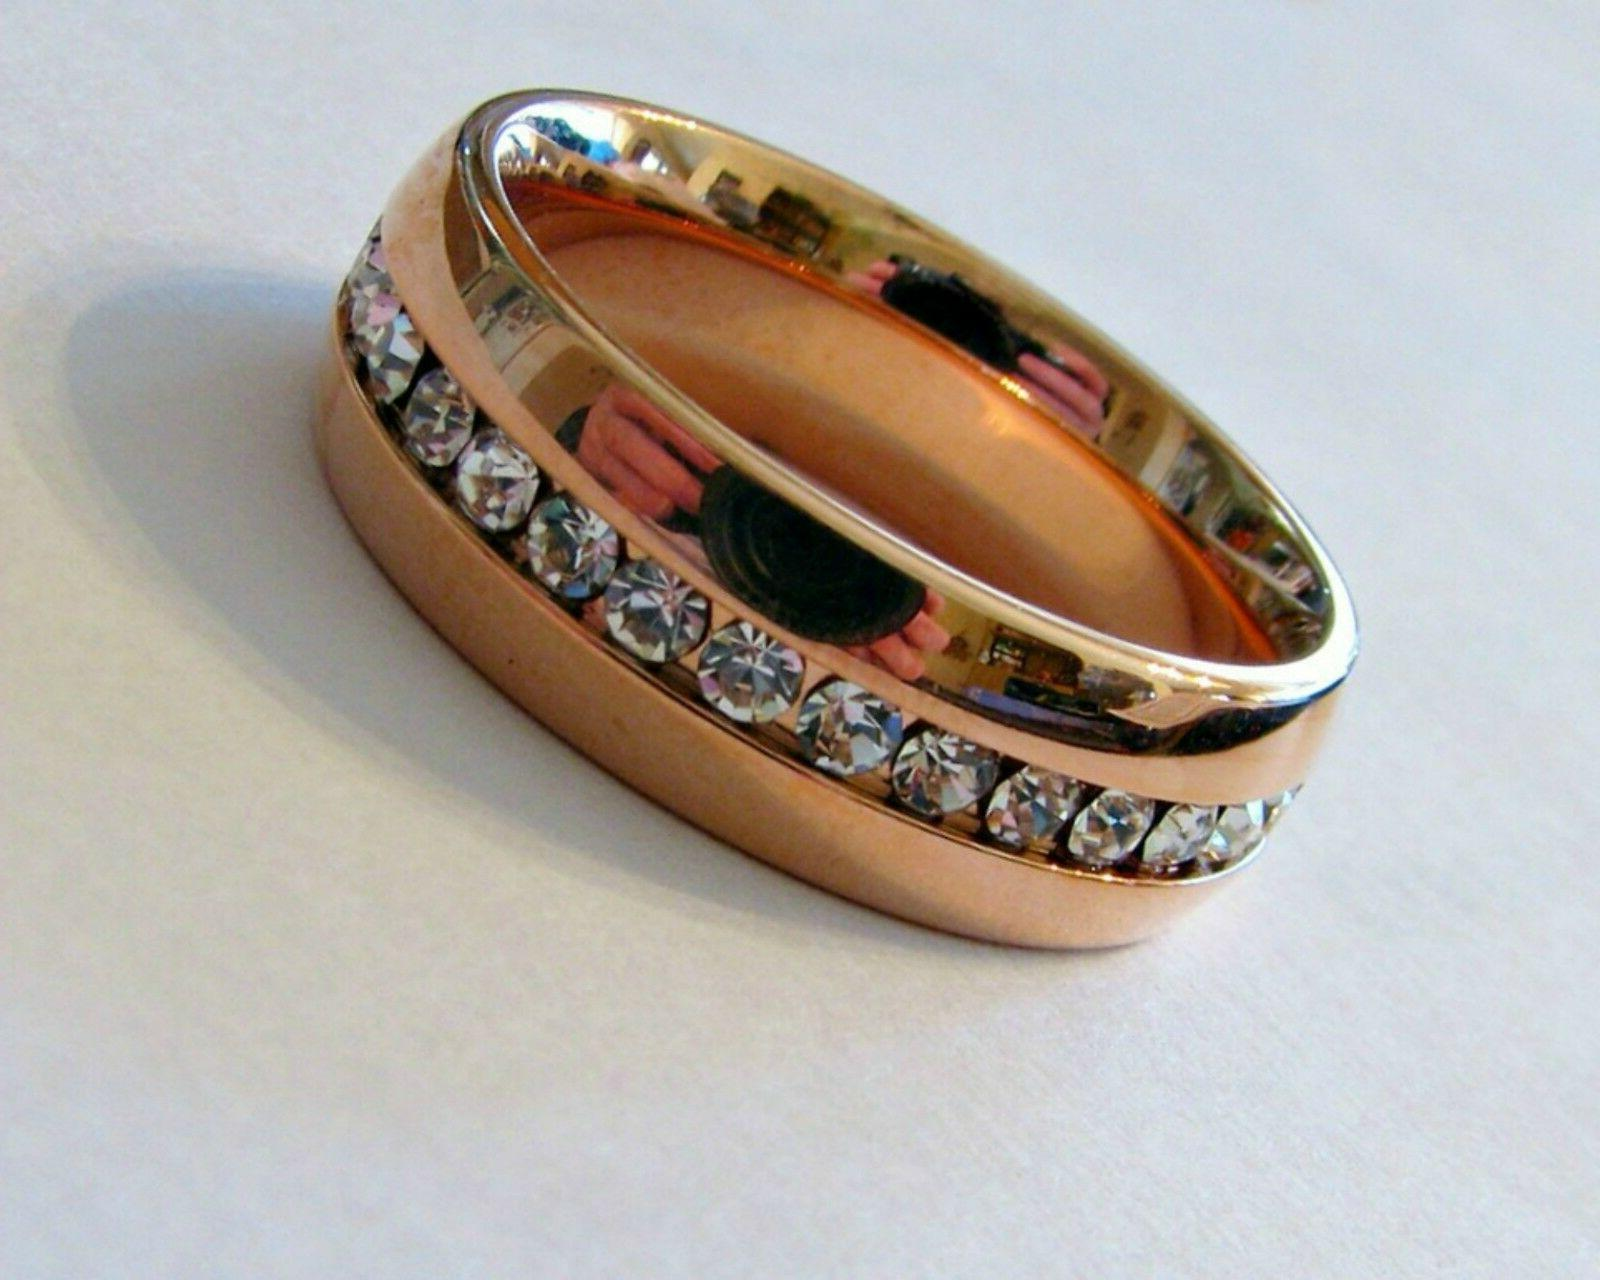 7mm rose gold stainless steel eternity cz